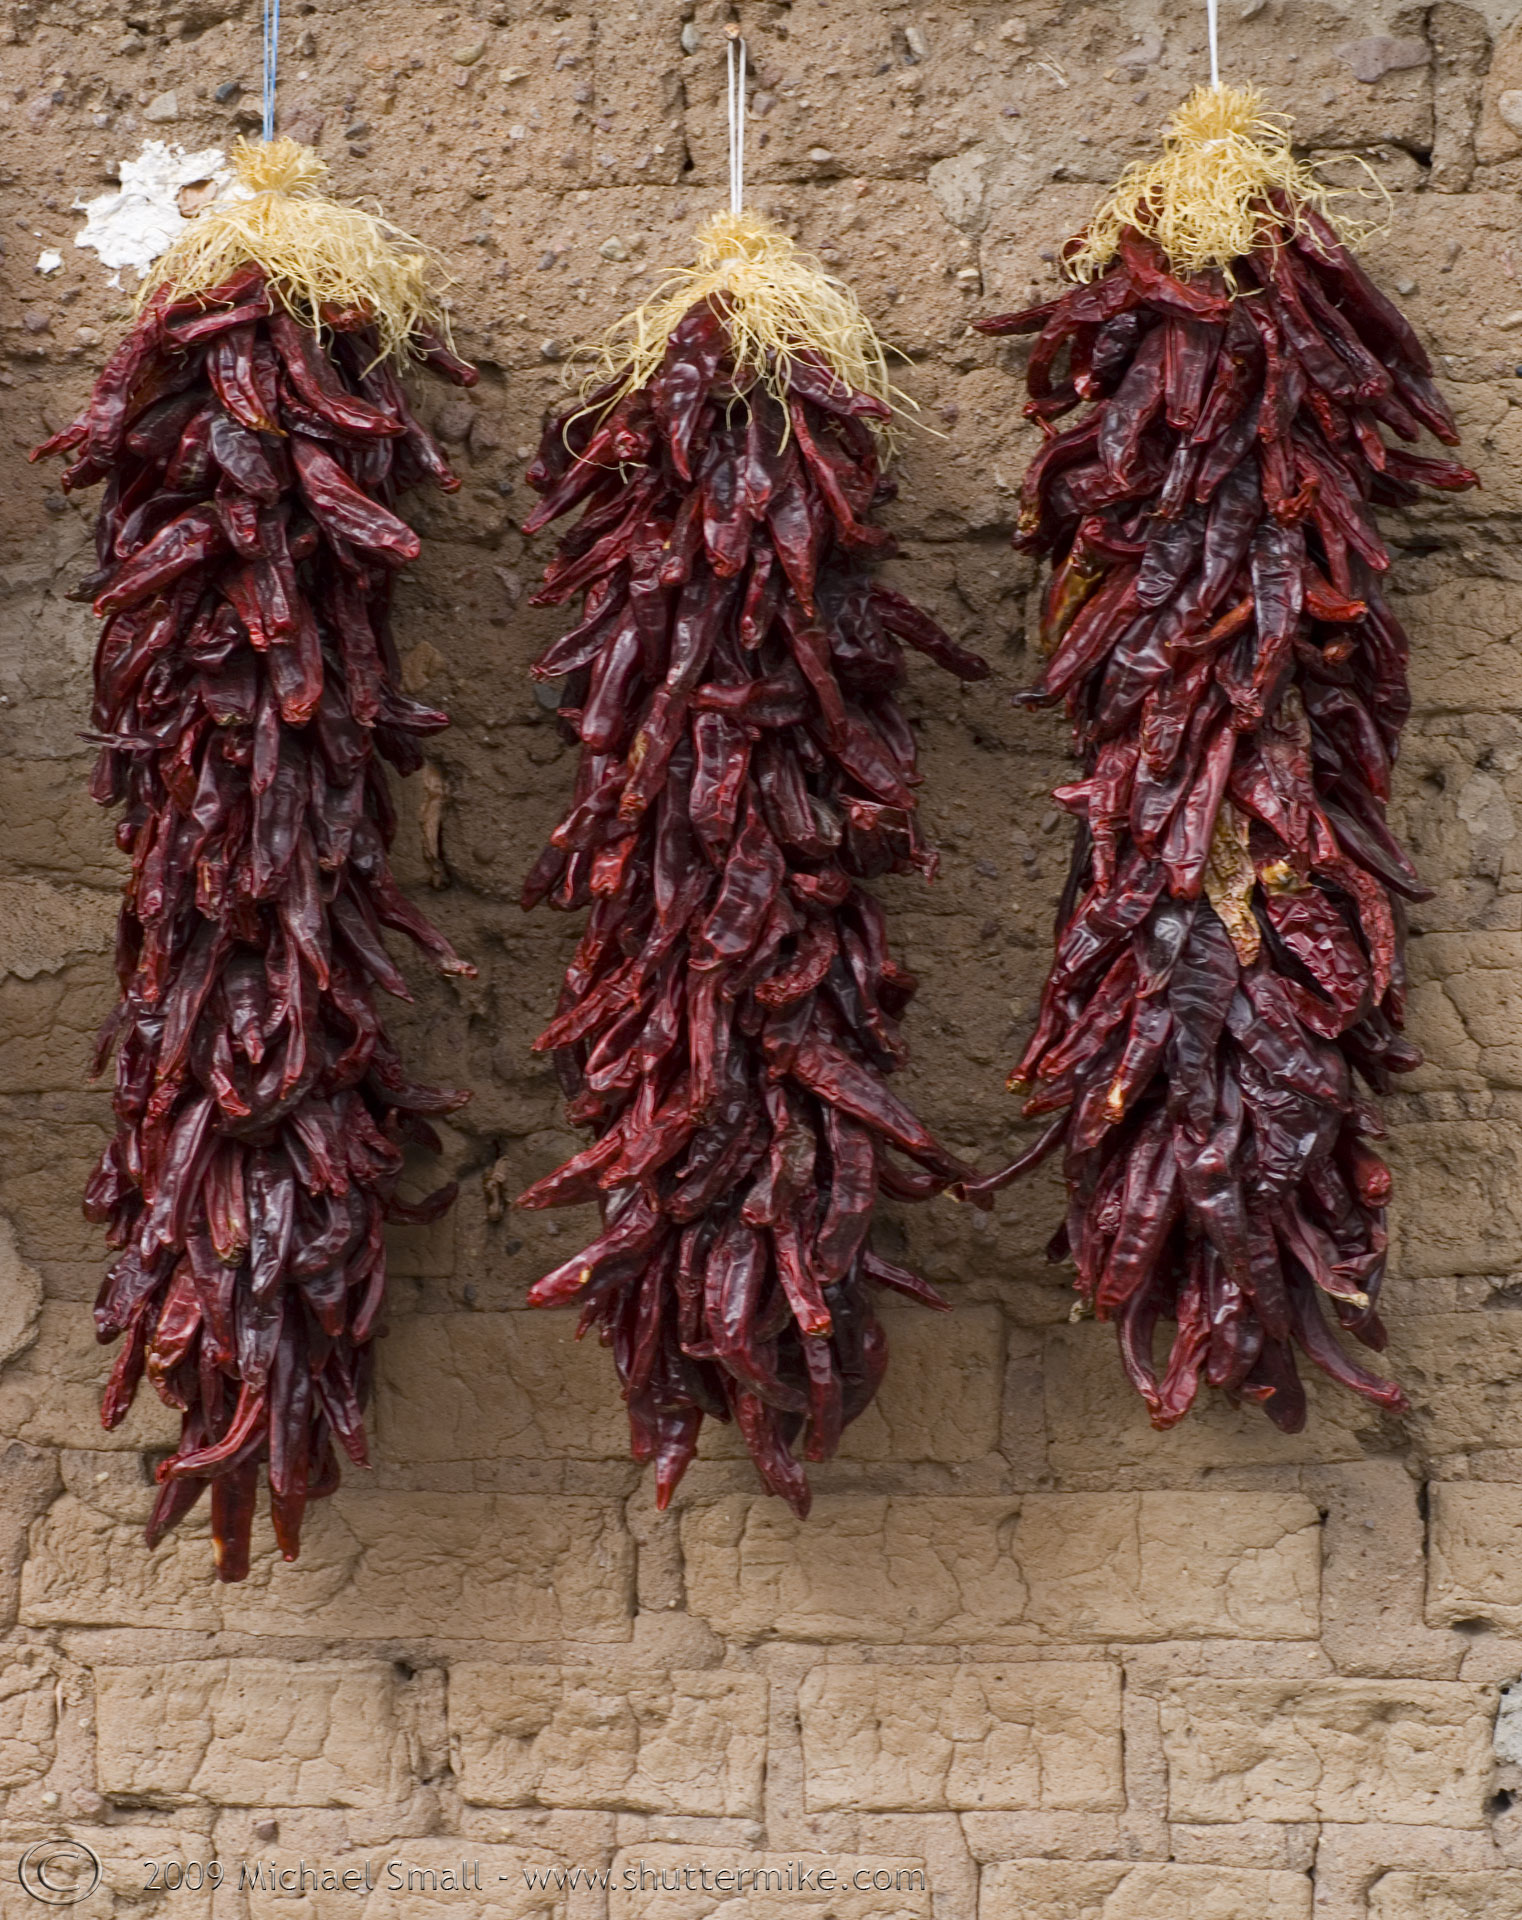 Dried Chili Peppers Gorgeous Decoration And Tasty Fest Ideas Pinterest